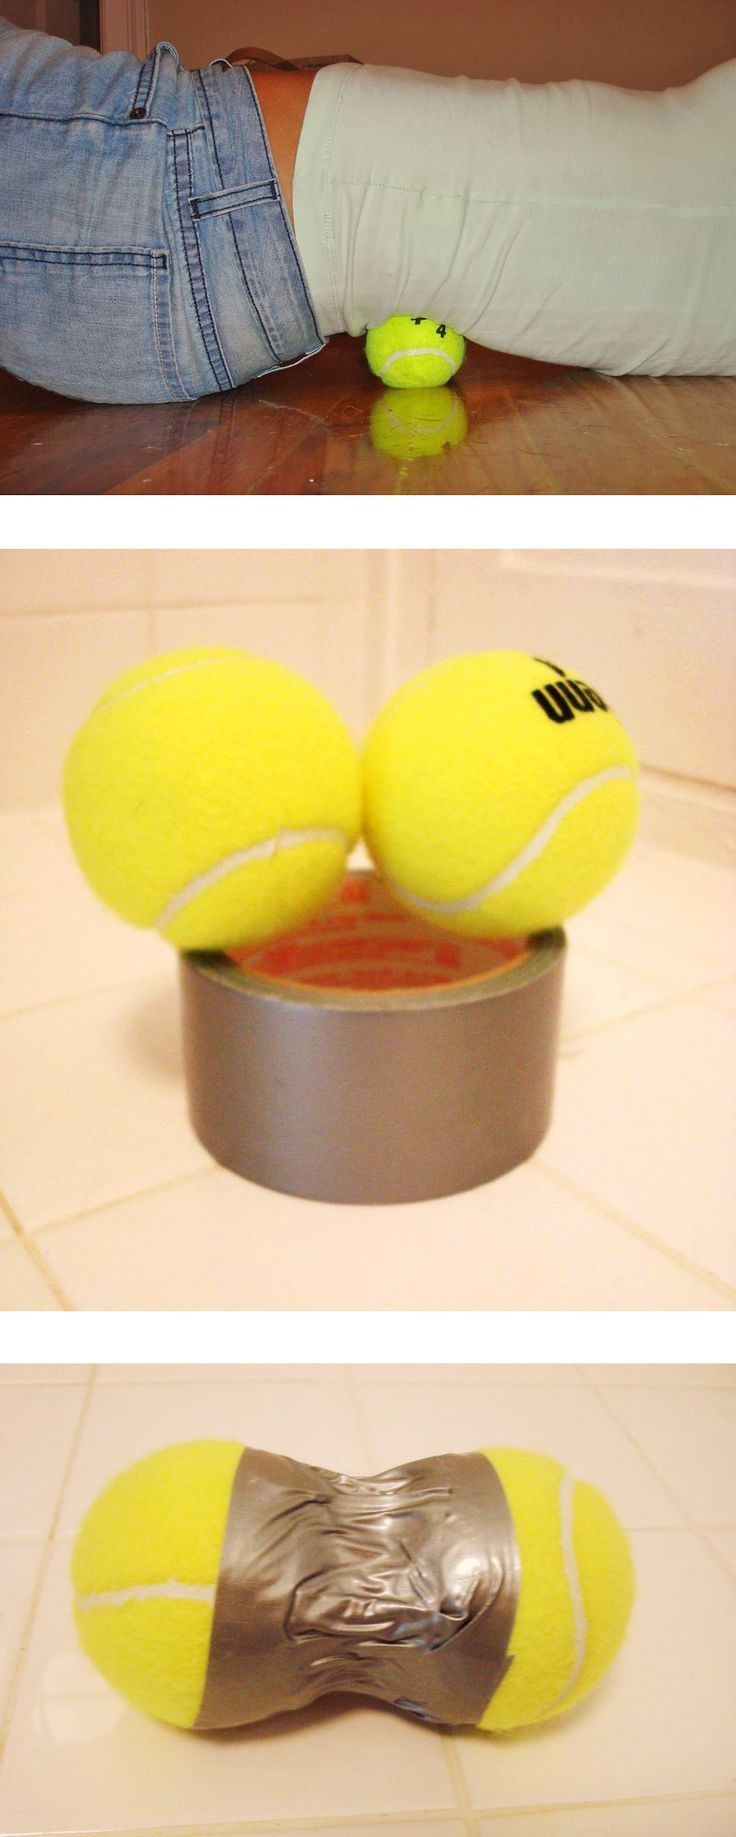 A quick way to relieve back pain. All you need is duct tape and two tennis balls! Avoid further back pain problems by reading our articles: https://www.zestdesk.com/BackPain